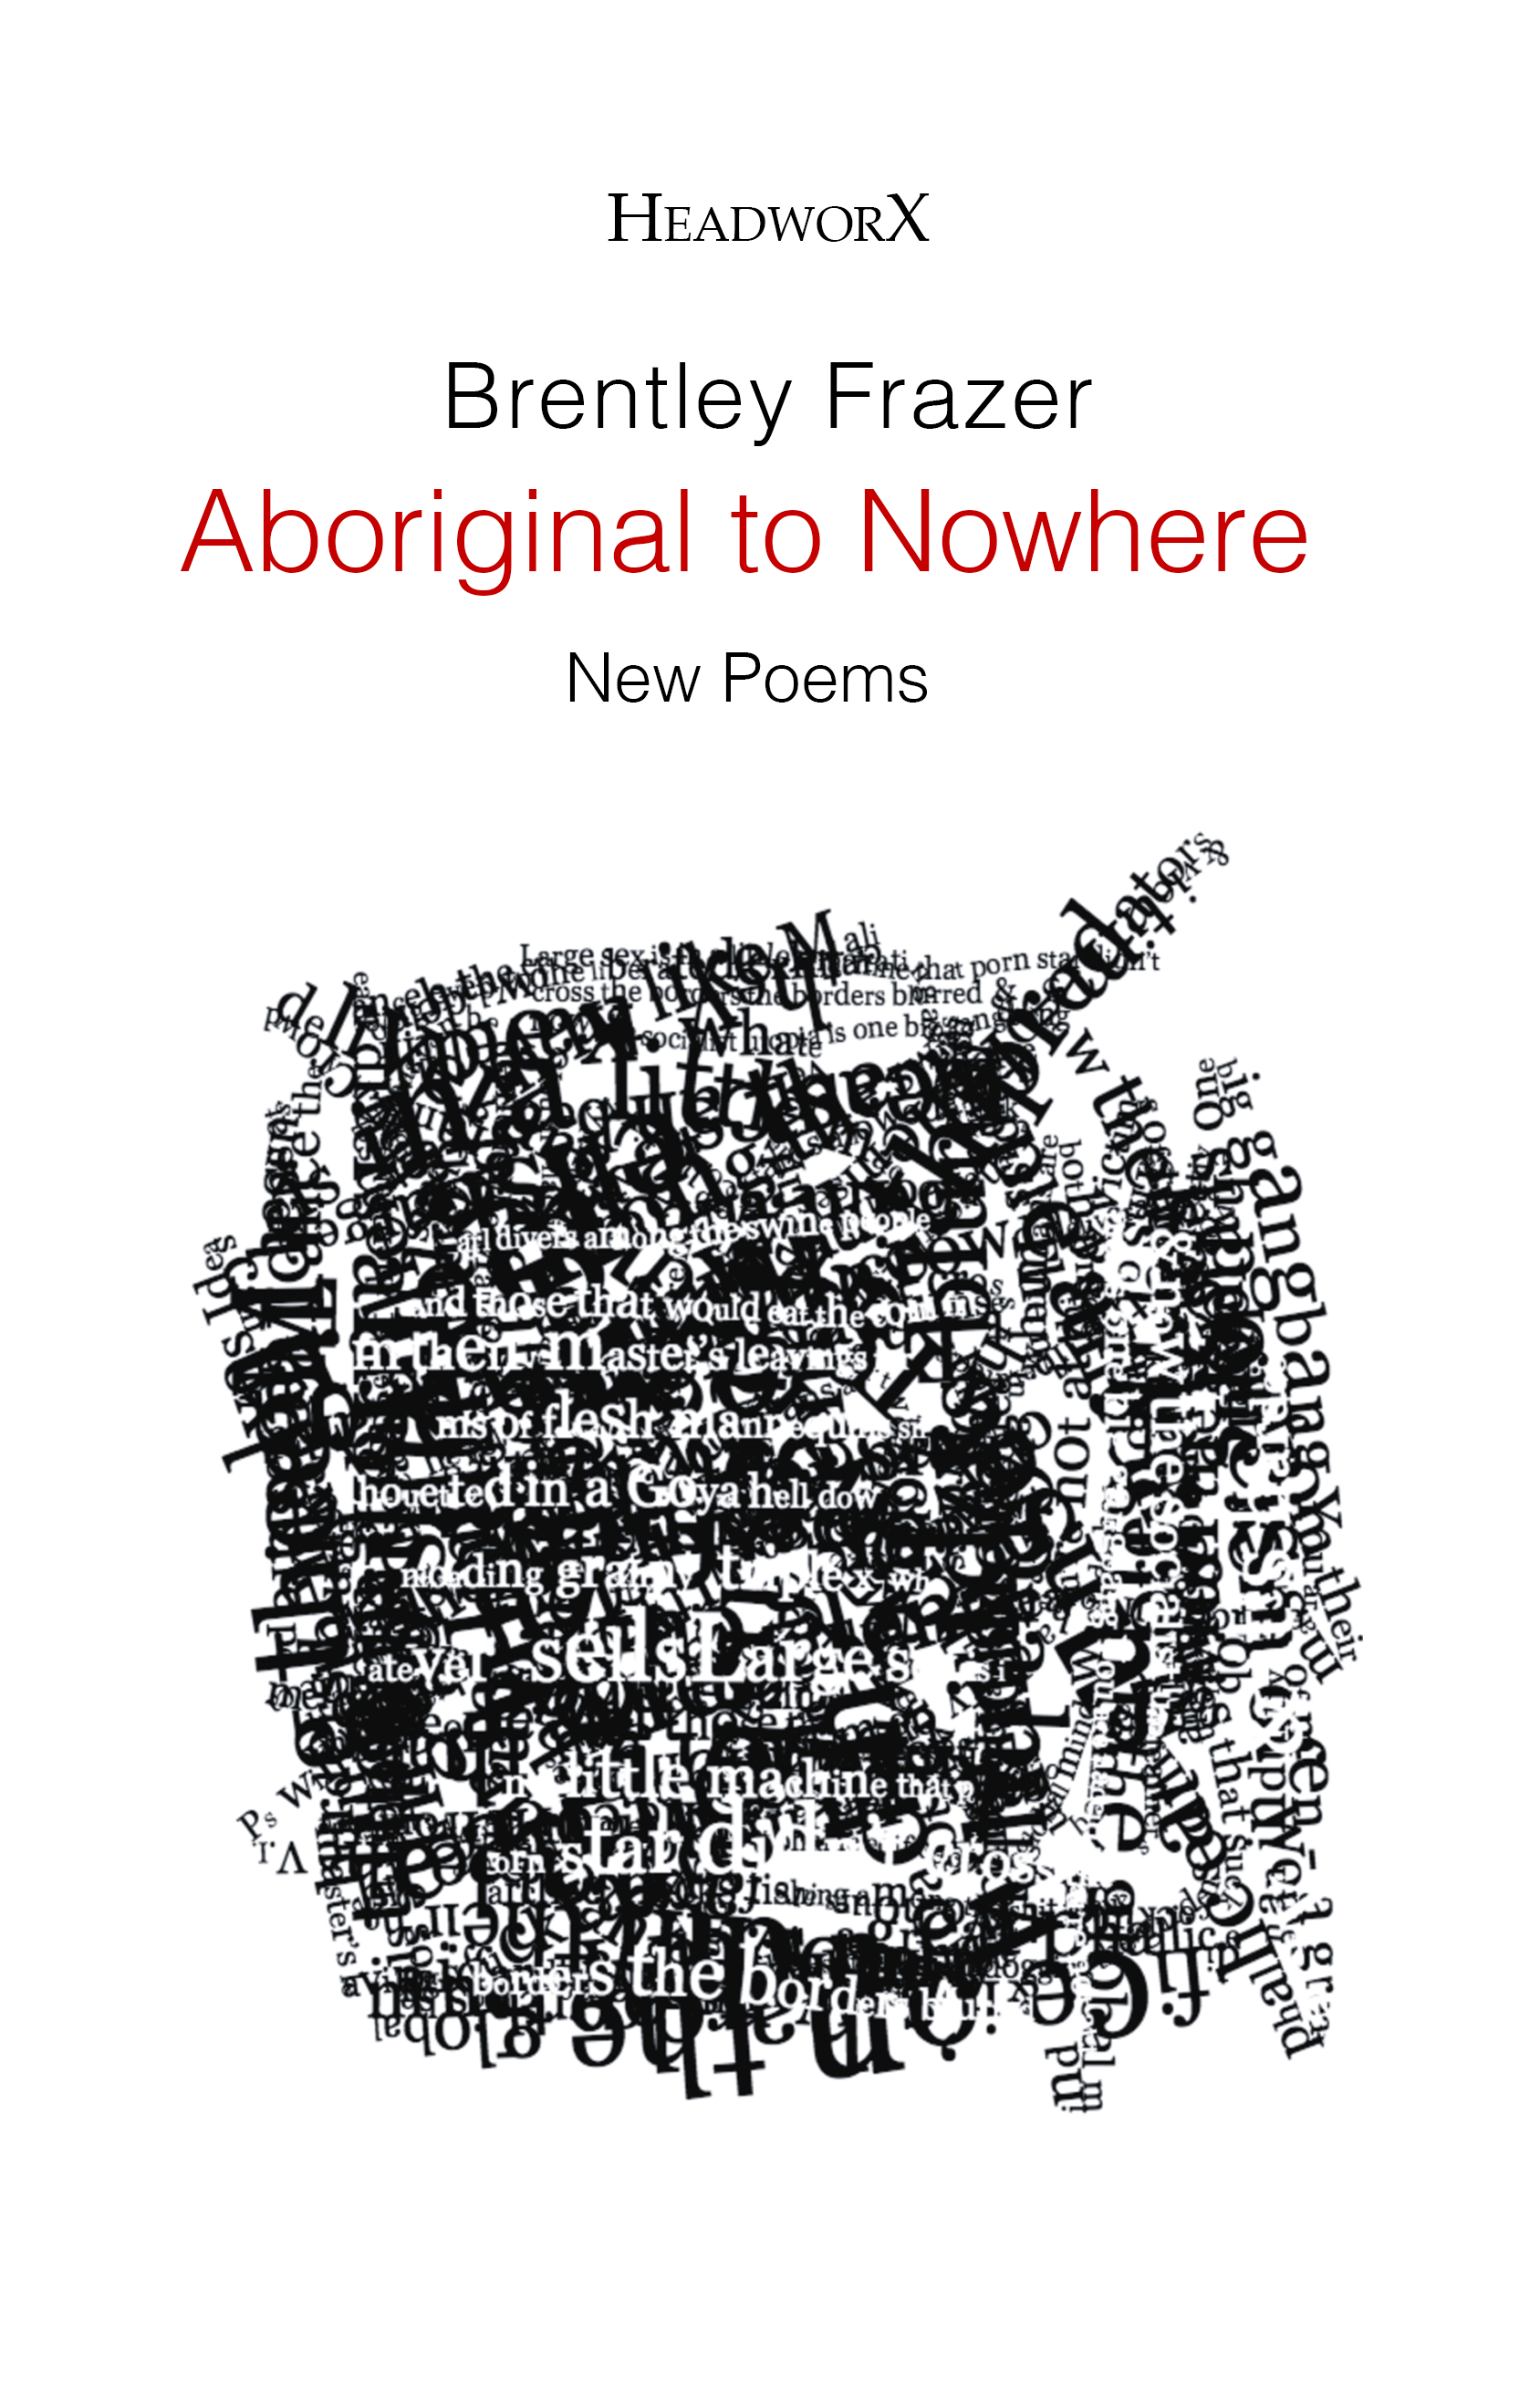 Aboriginal to Nowhere -poems by Brentley Frazer